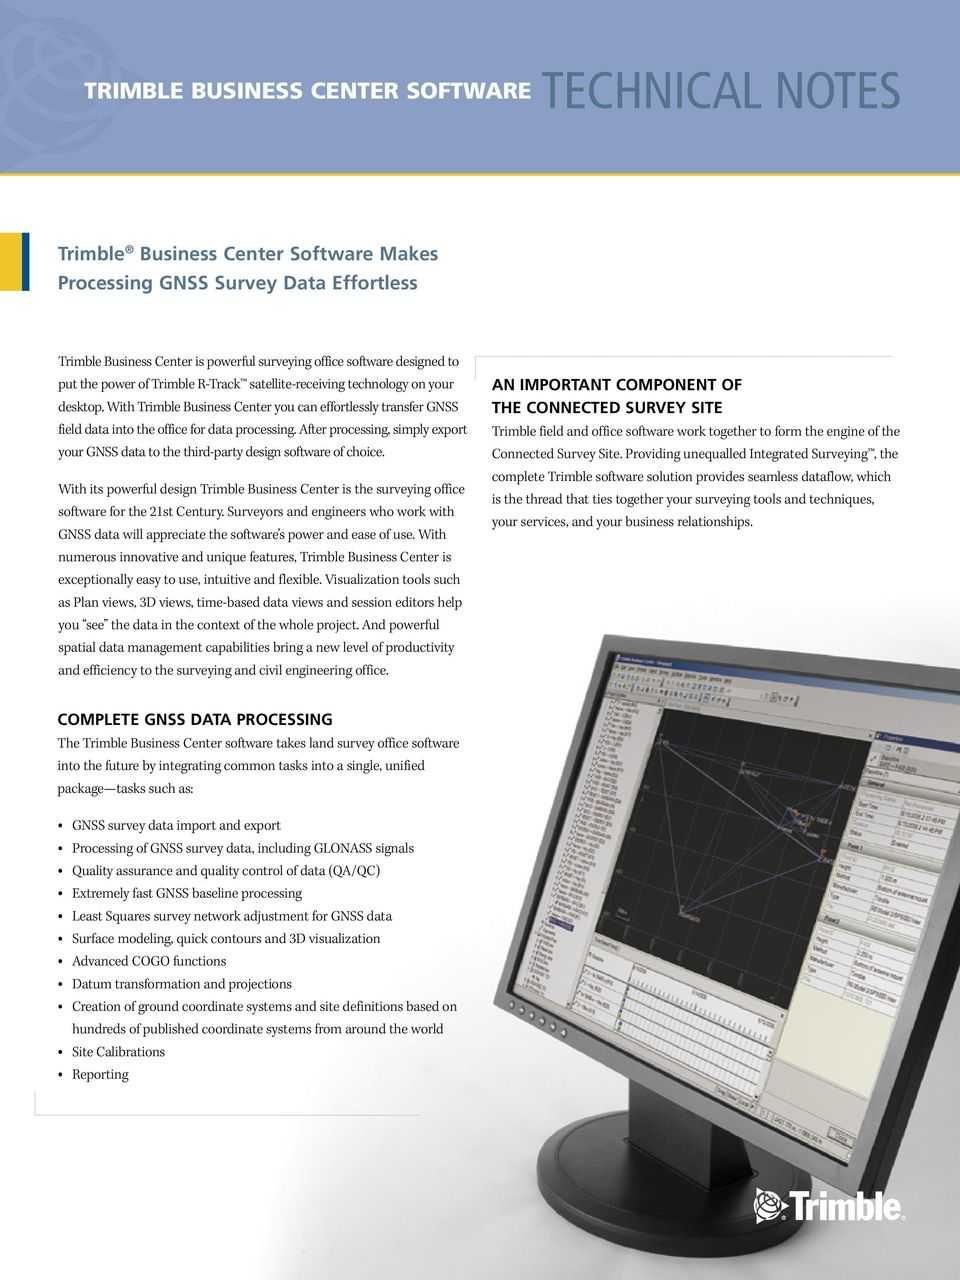 technical notes Trimble Business Center Software Makes Processing